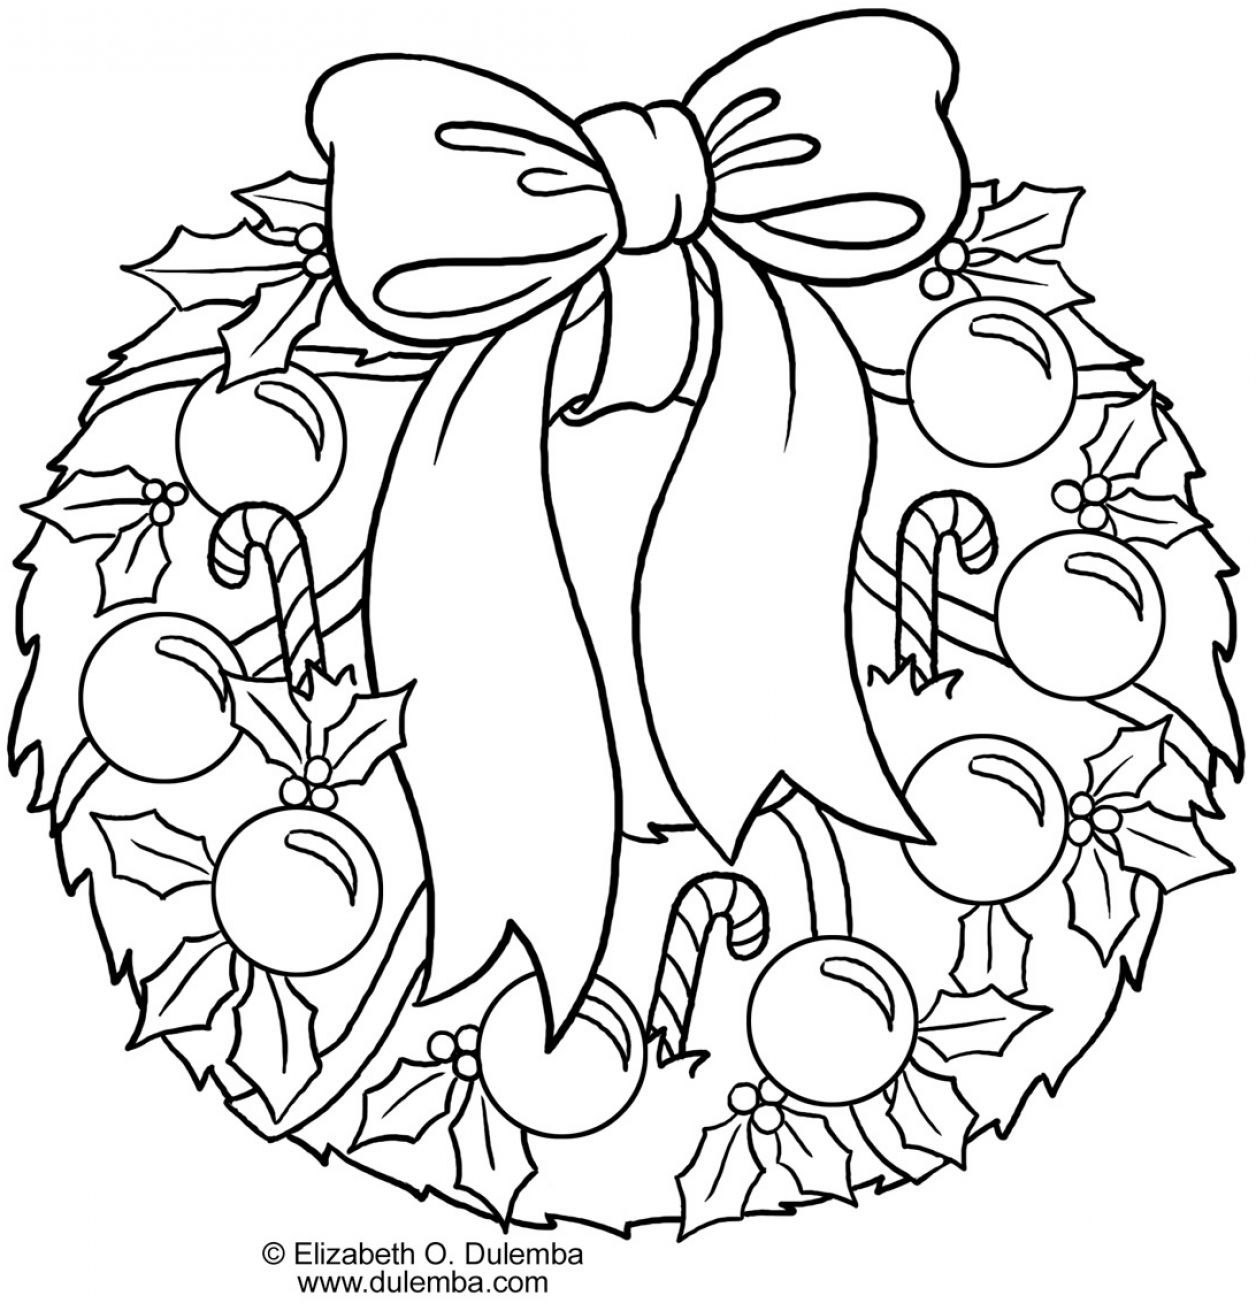 Adult Cute Holly Coloring Page Gallery Images top free coloring pages of christmas holly printable 6 pics page leaves images